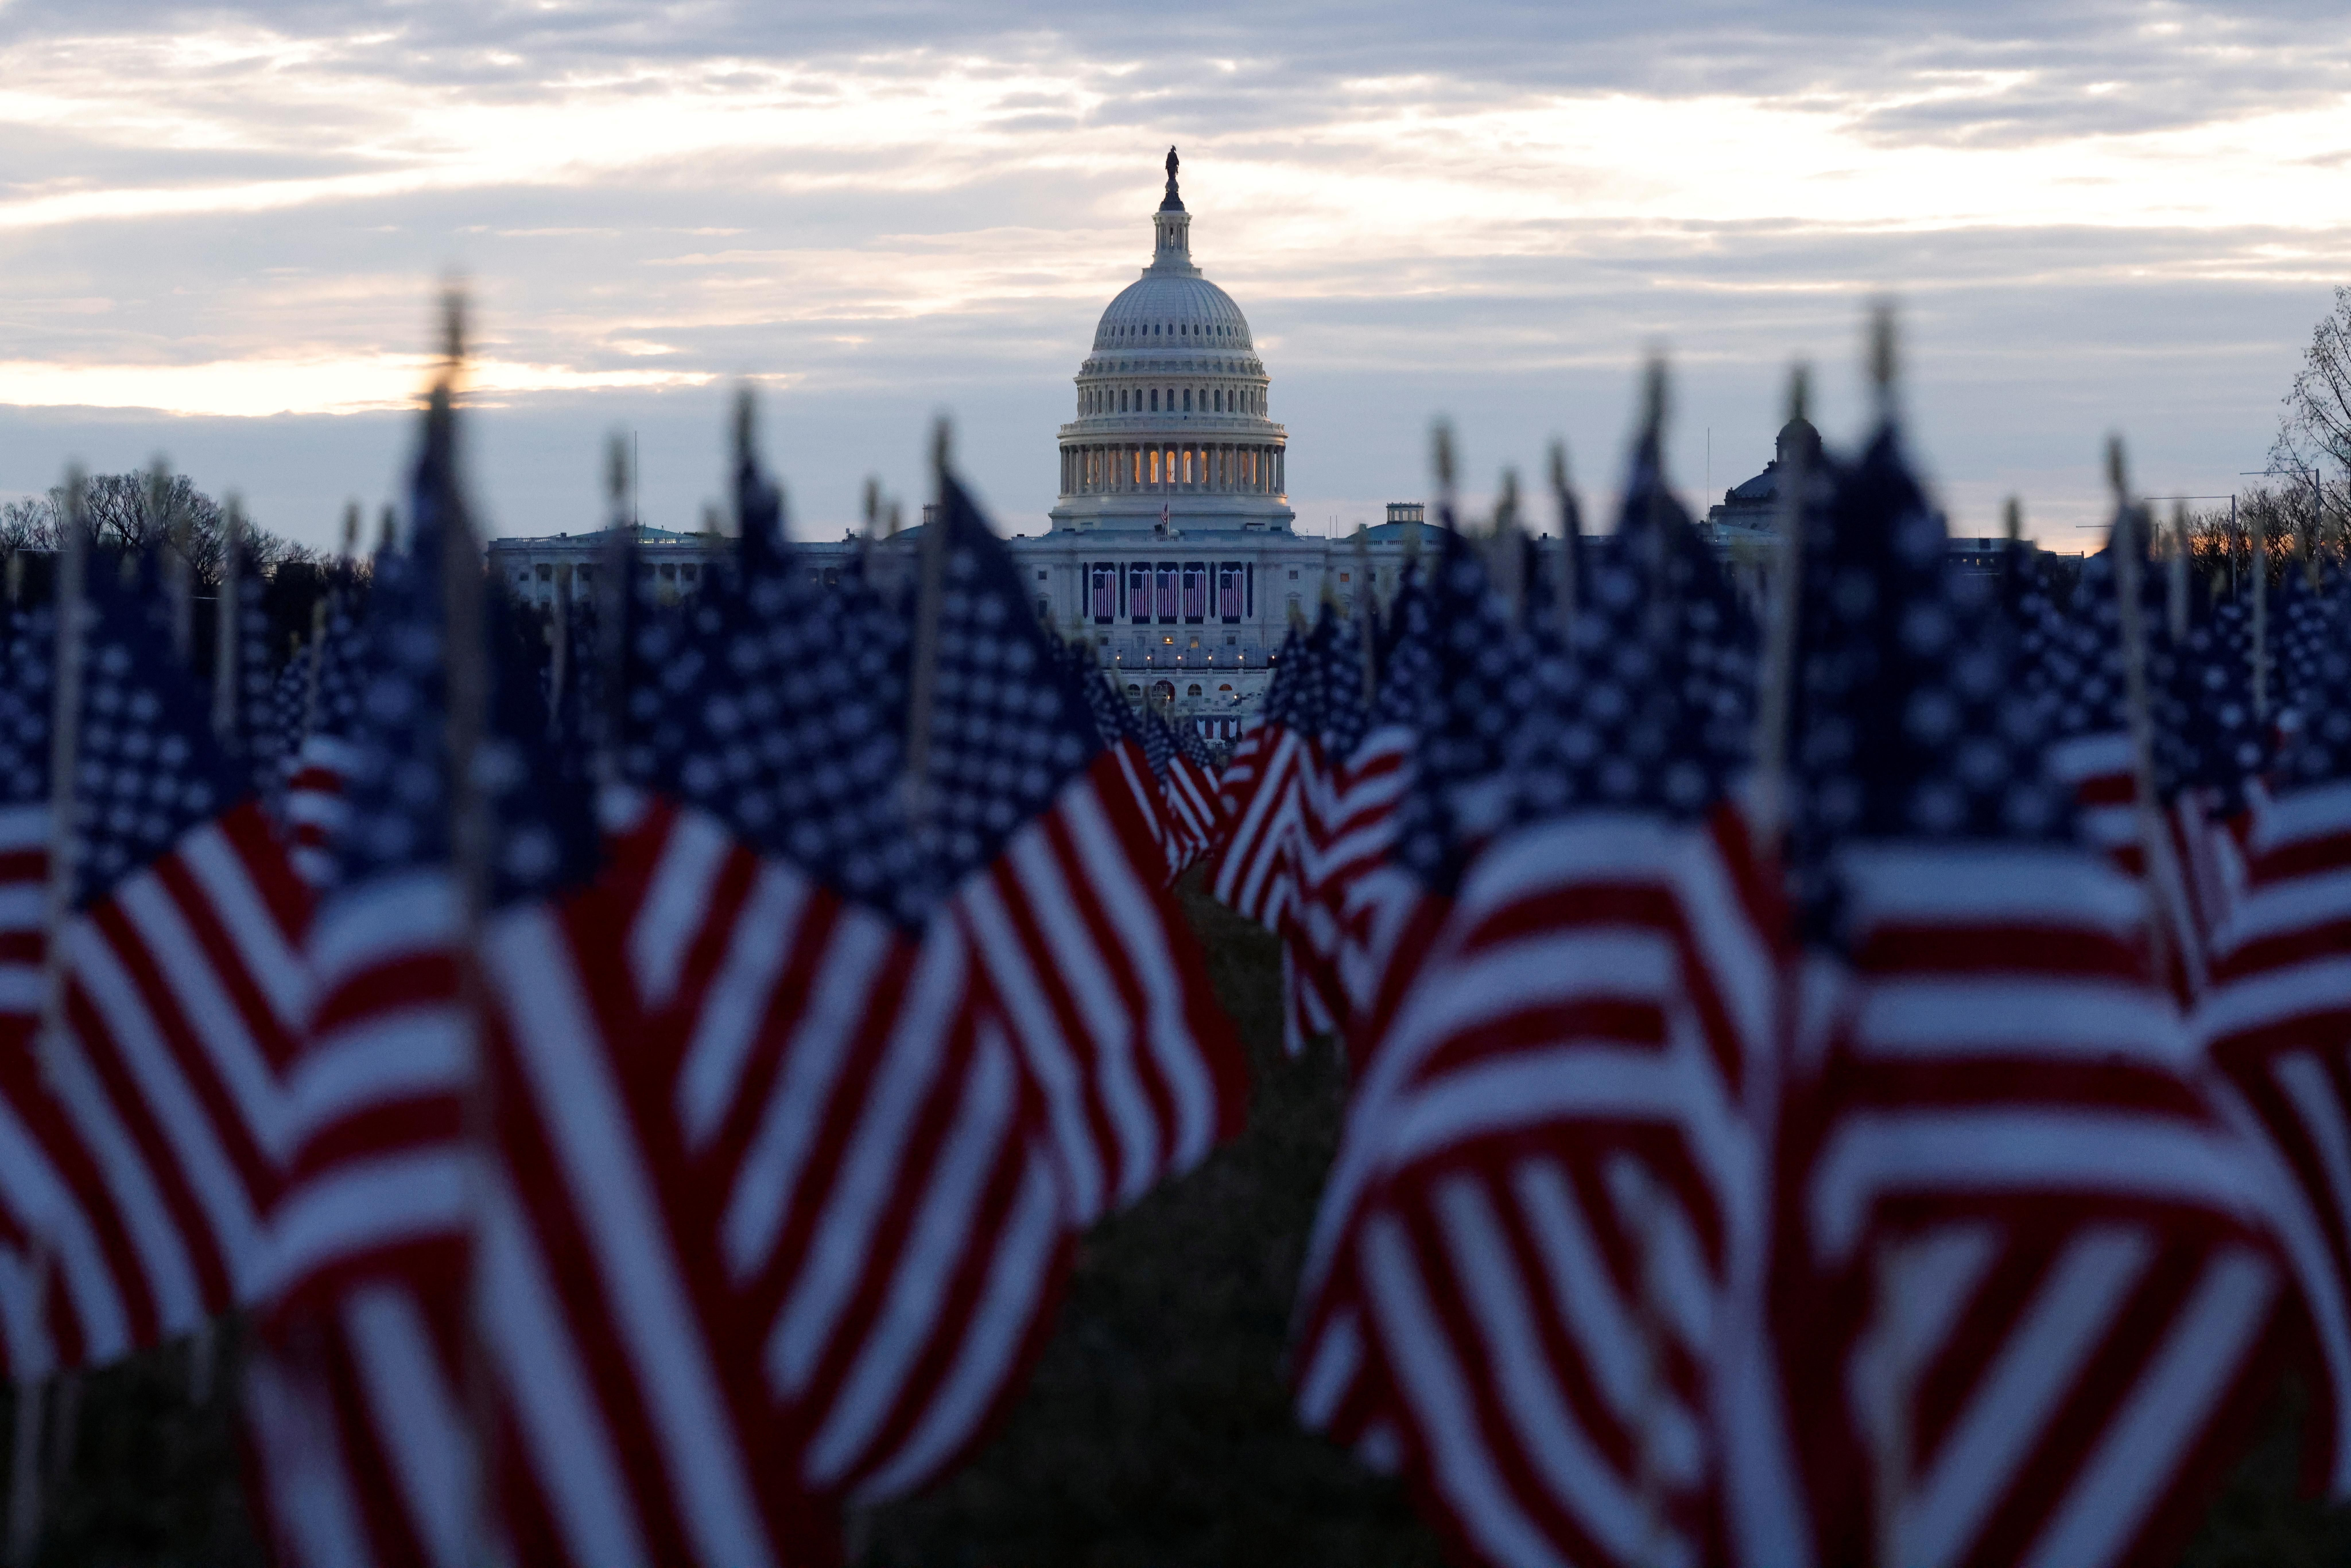 Flags at the US National Mall represent the people who are unable to travel for Joe Biden's presidential inauguration in Washington. REUTERS/Carlos Barria